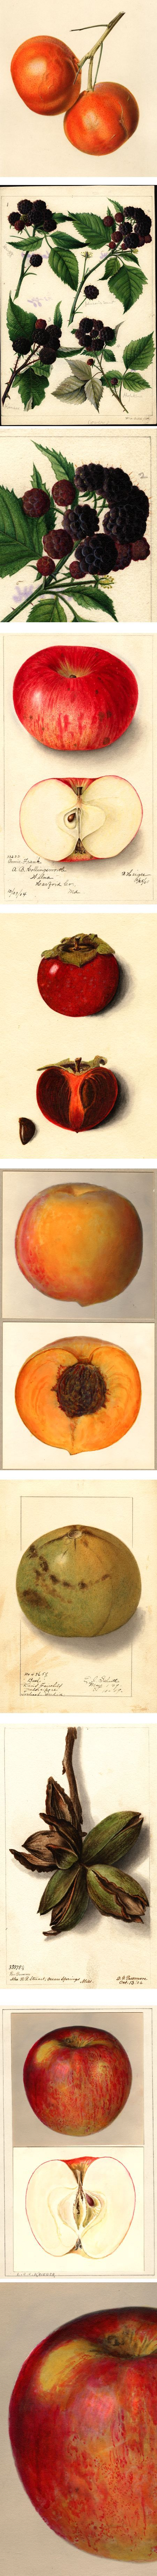 USDA Pomological Watercolor Digital Collection: Charles Steadman, William Henry Prestle, Bertha Heiges, M. Strange, Harriet L. Thompson, Ellen Isham Schutt, Deborah Griscom Passmore, L.C.C. Krieger